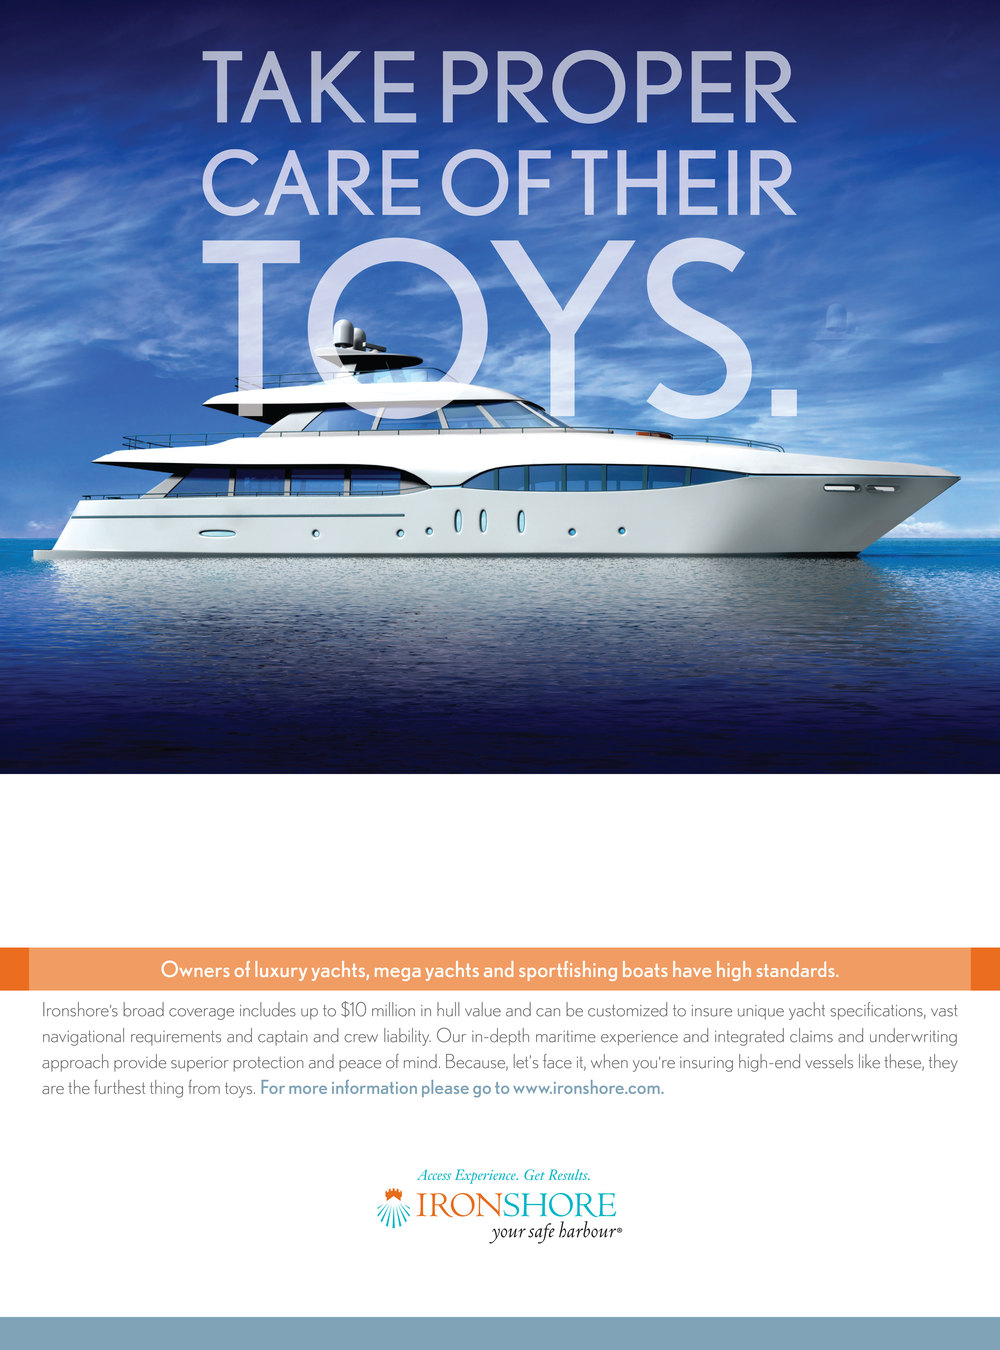 ironshore-insurance-advertising-yacht-marine-coverage.jpg